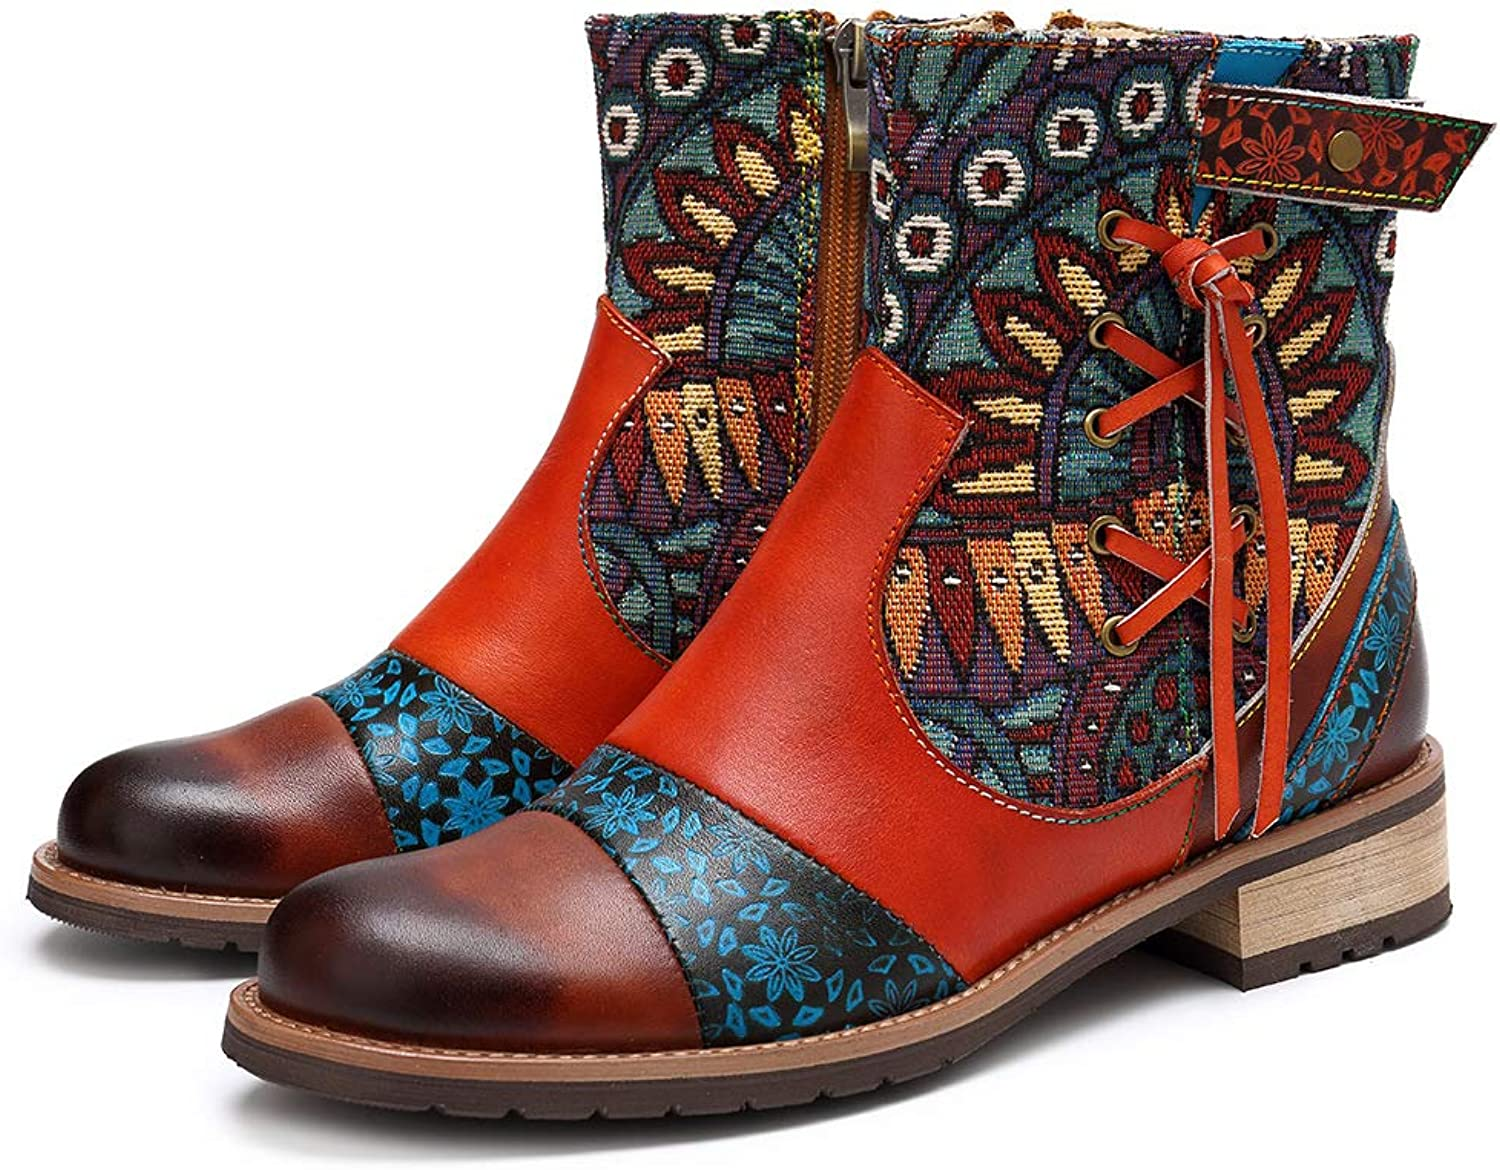 HUIYA Bohemian Style Fashion Ladies Boots colorful Leather Print Ladies Women's Boots Cowboy Boots Ladies shoes Red